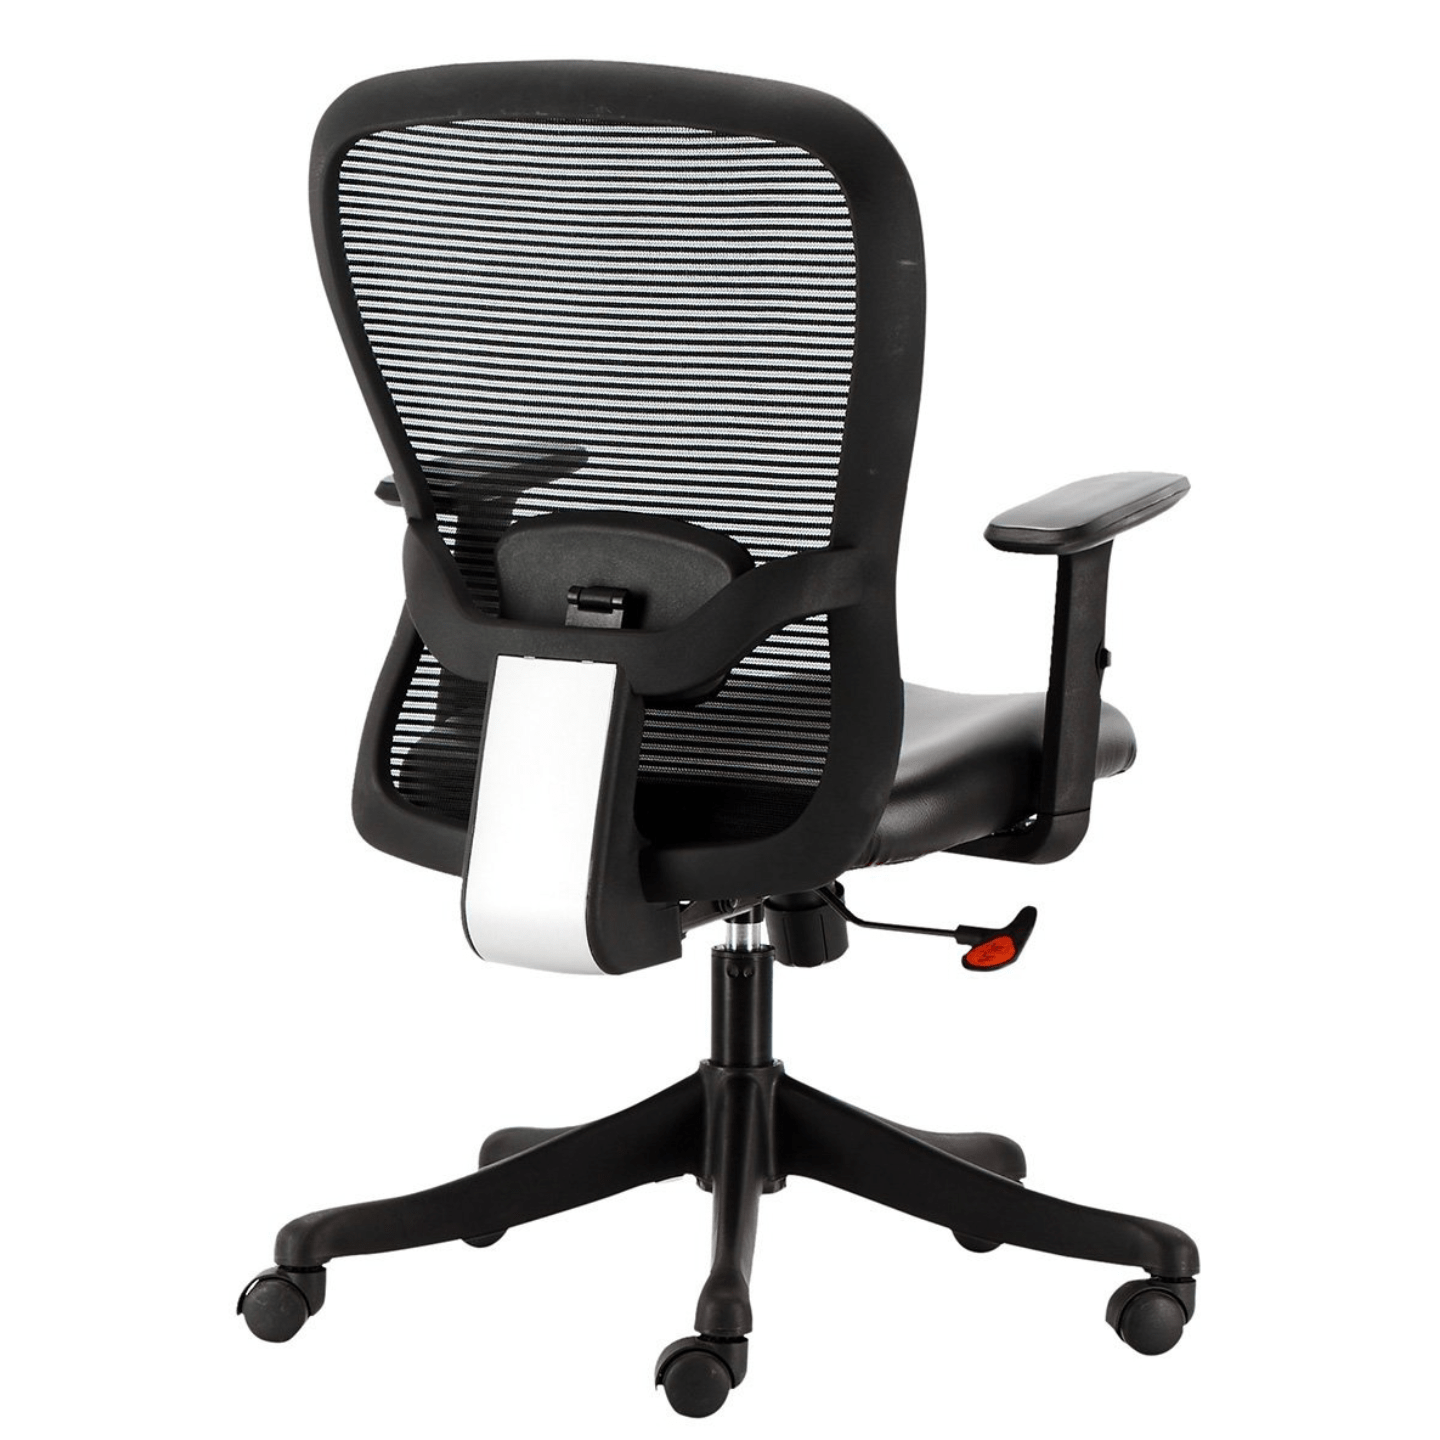 Home Office Chair Model - DAM MB